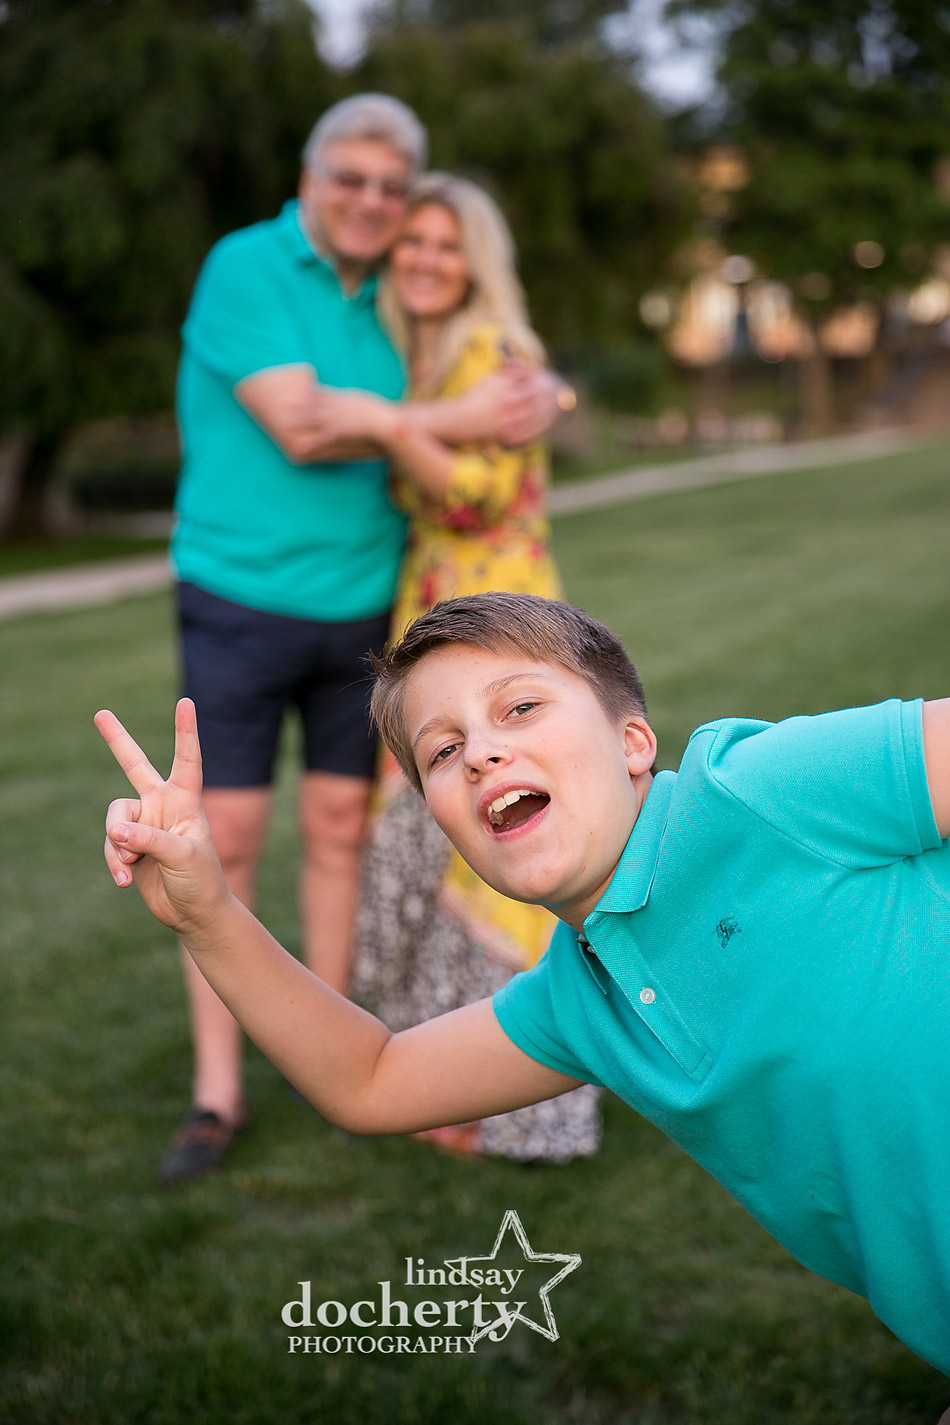 tween boy photobombing photo session with mom and grandfather